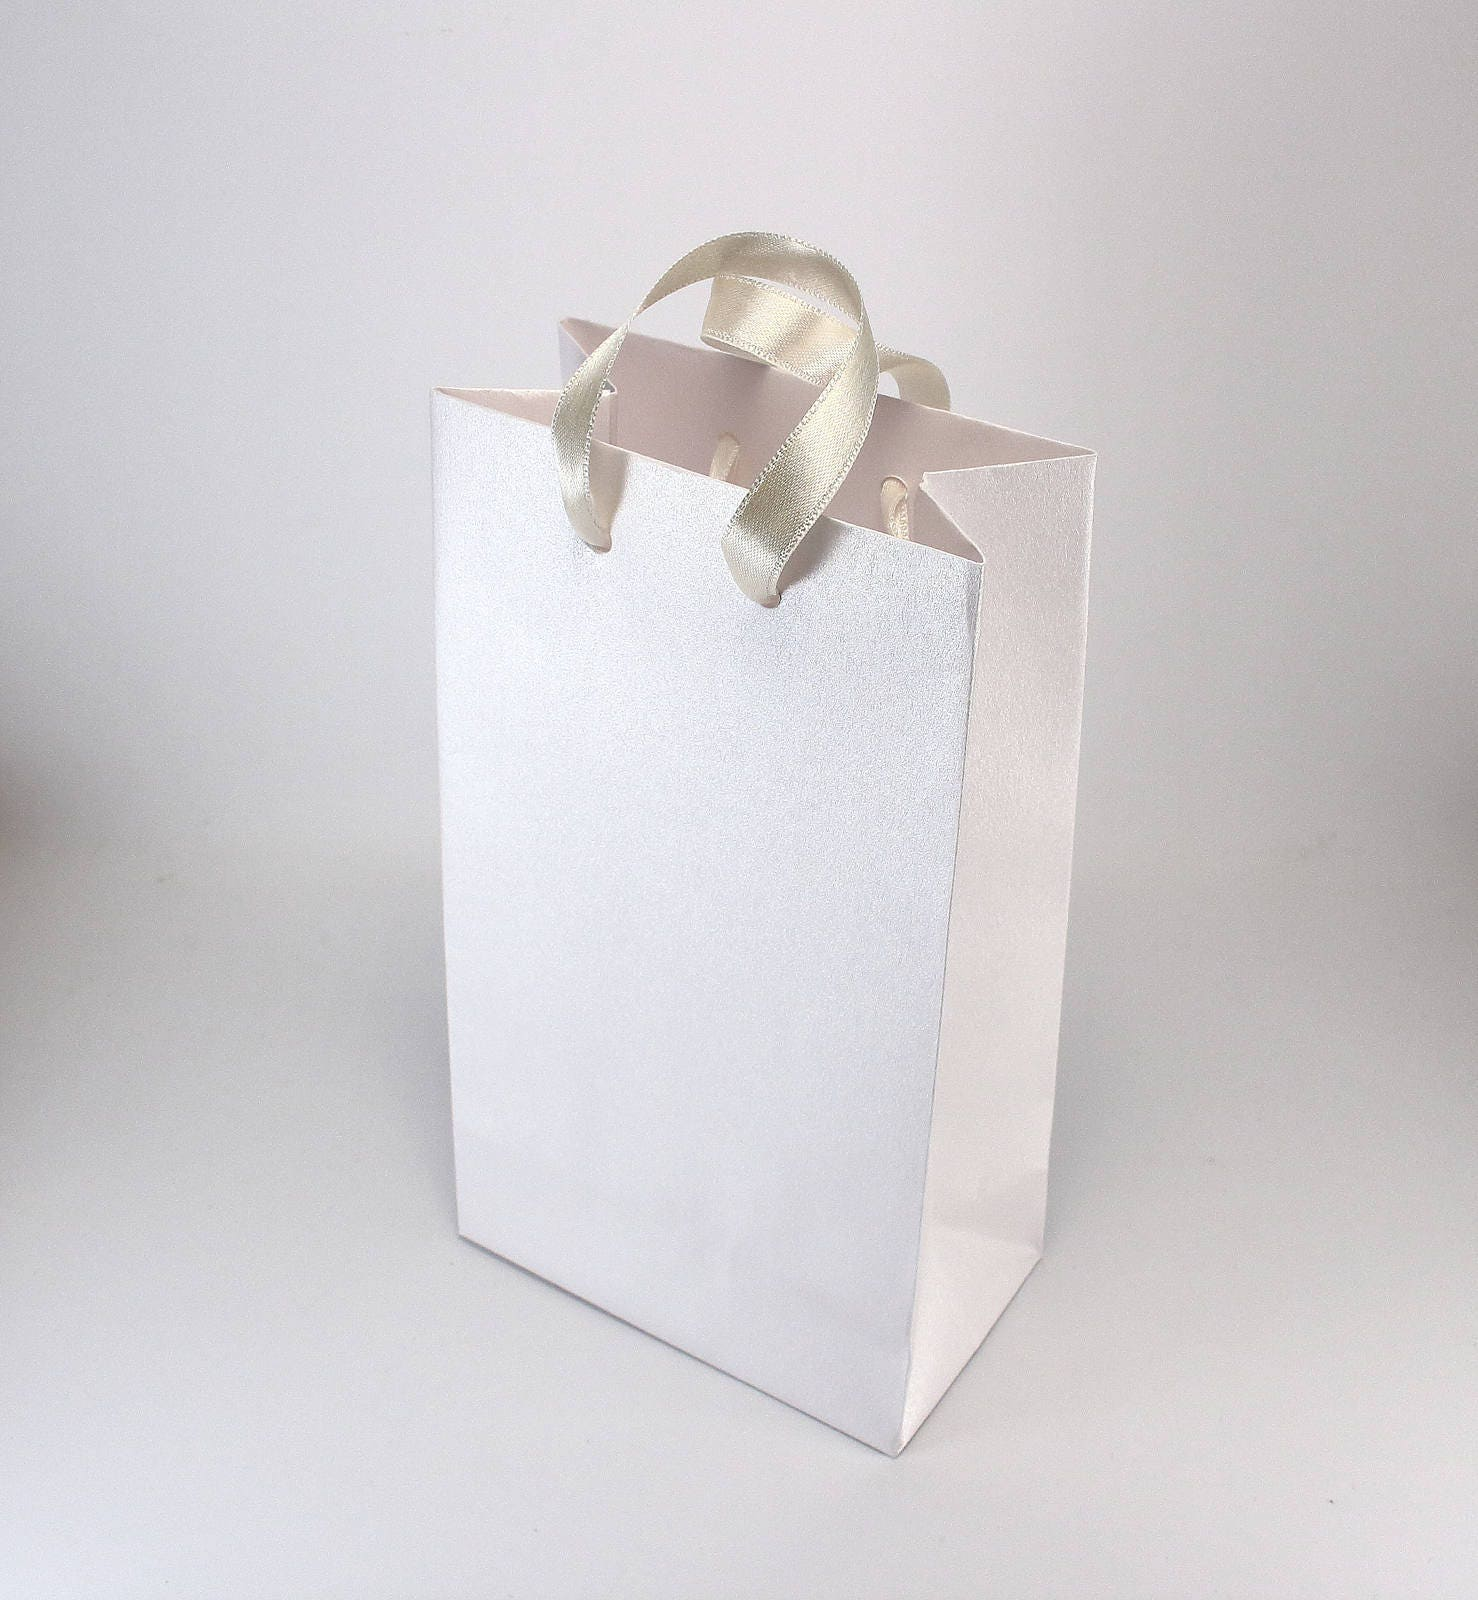 50 Small White Paper Bags For Wedding Guests Luxury Metallic Paper